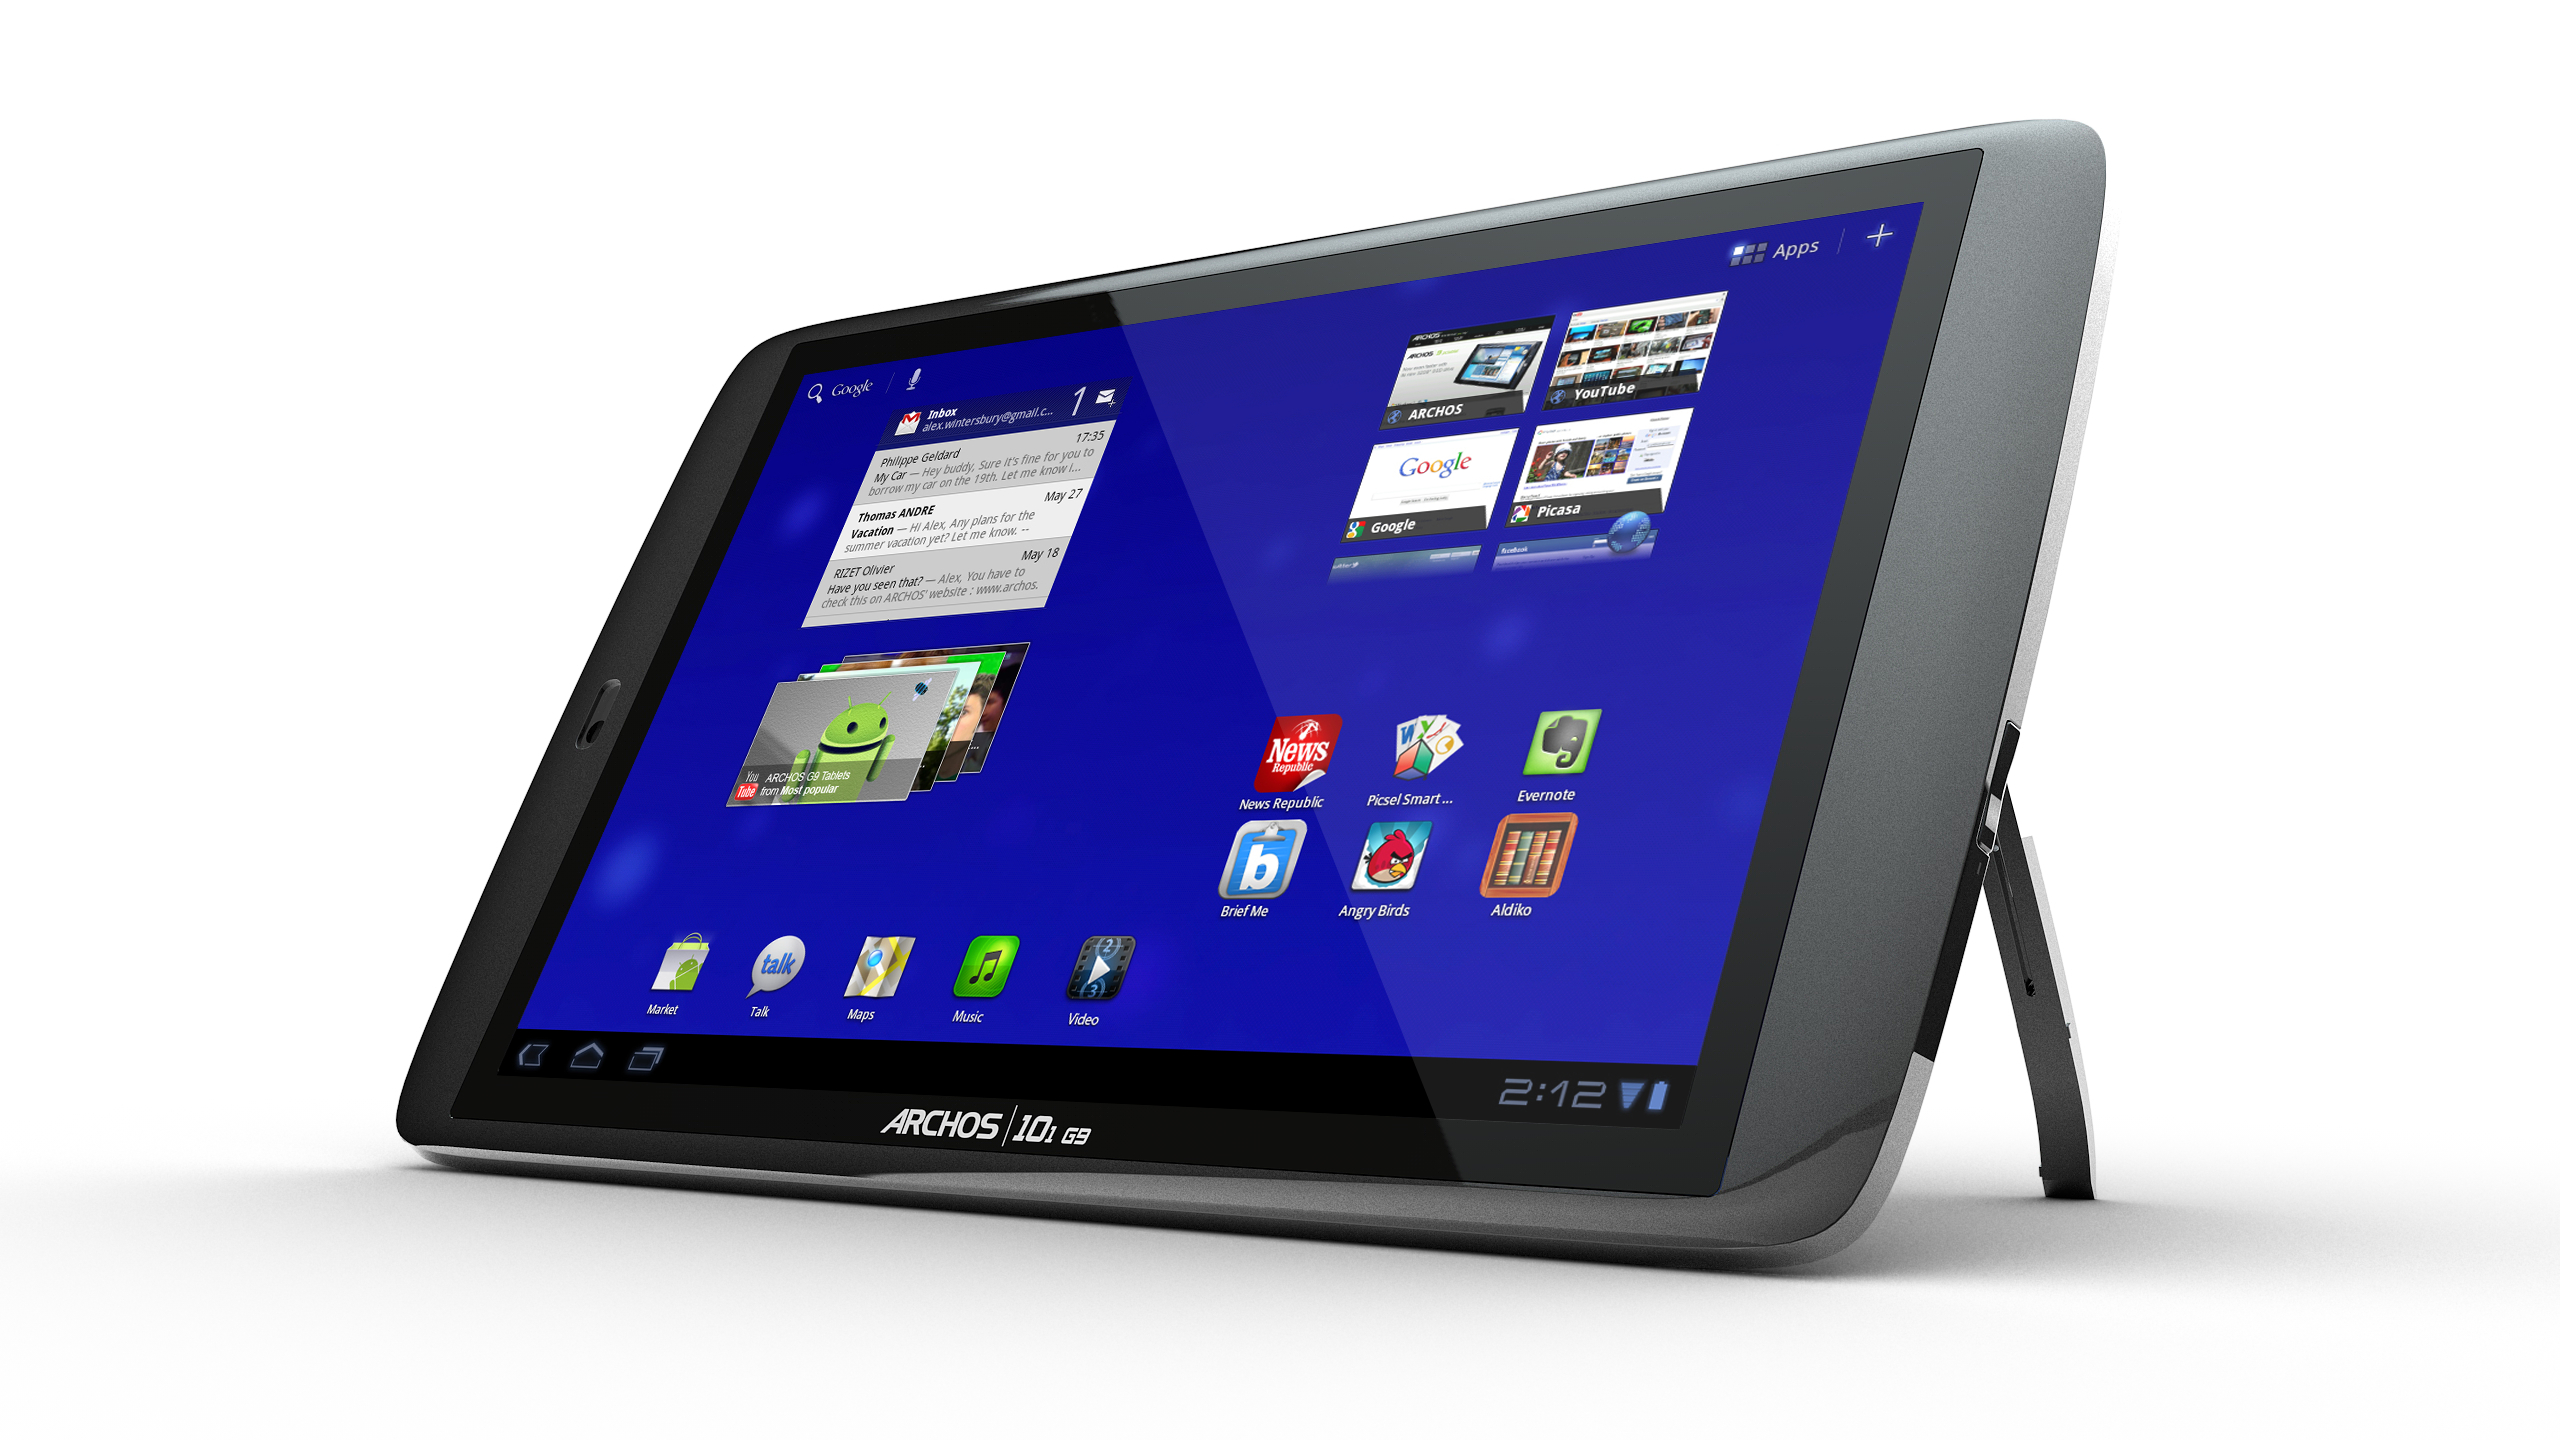 archos 101 g9 internet tablet rh cleverhome com au archos 101 g9 user manual Archos 101 Ports